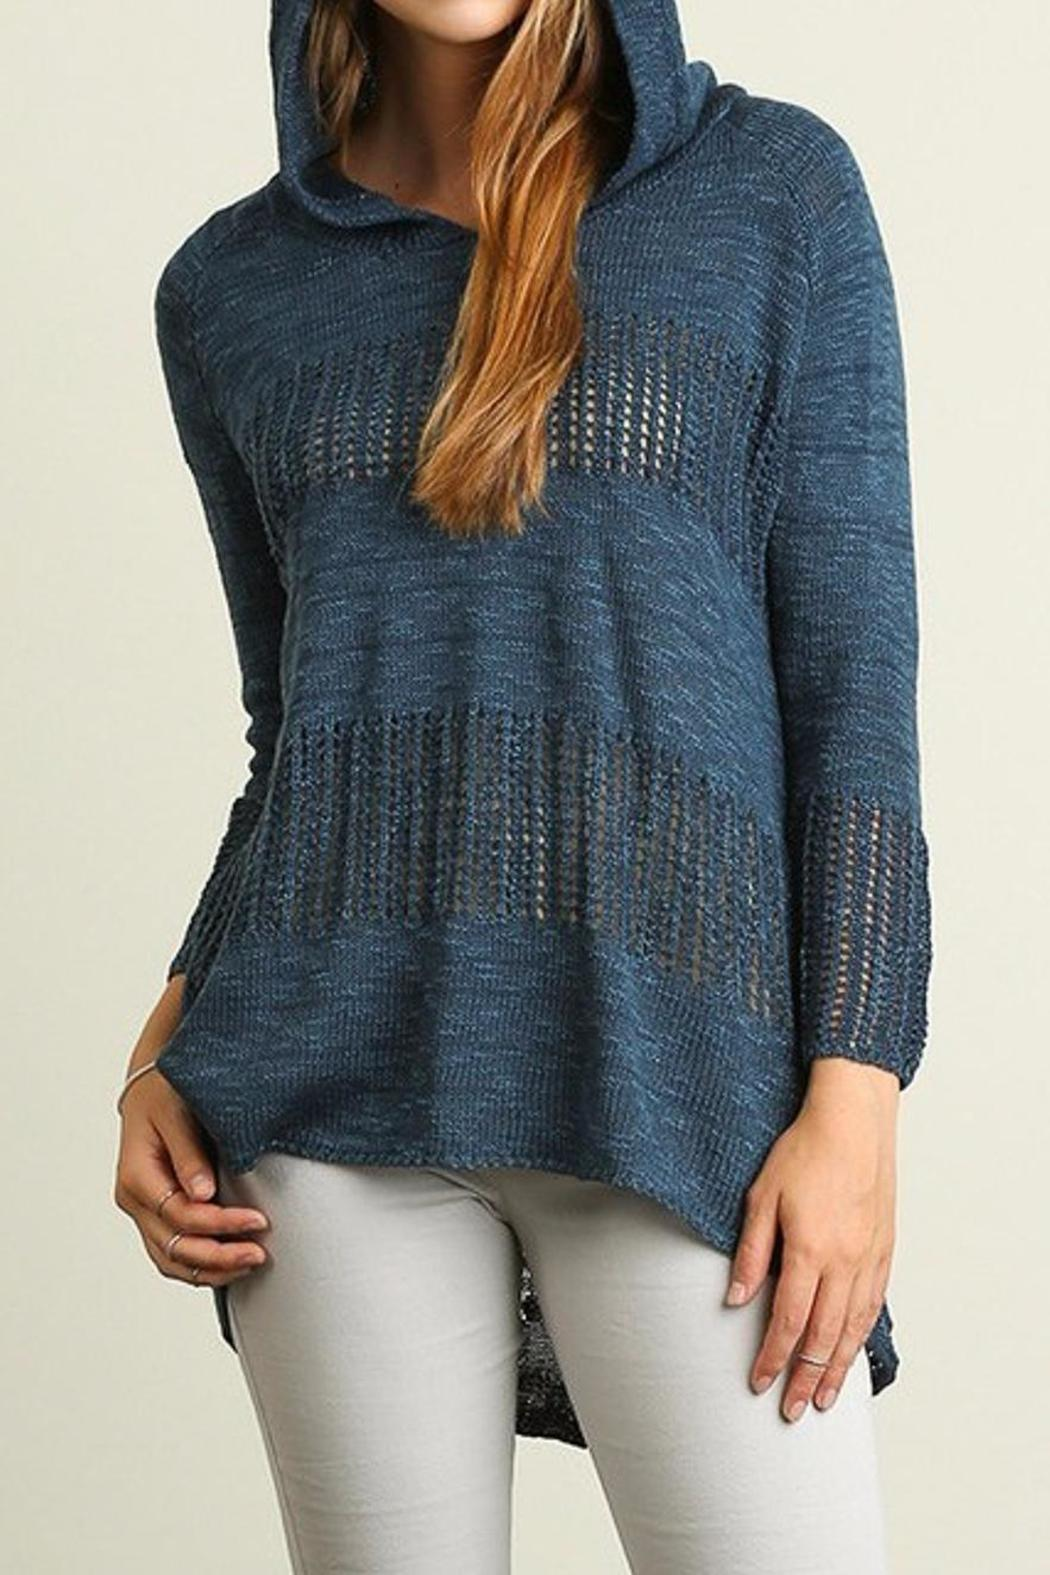 People Outfitter Anna Sweater - Main Image